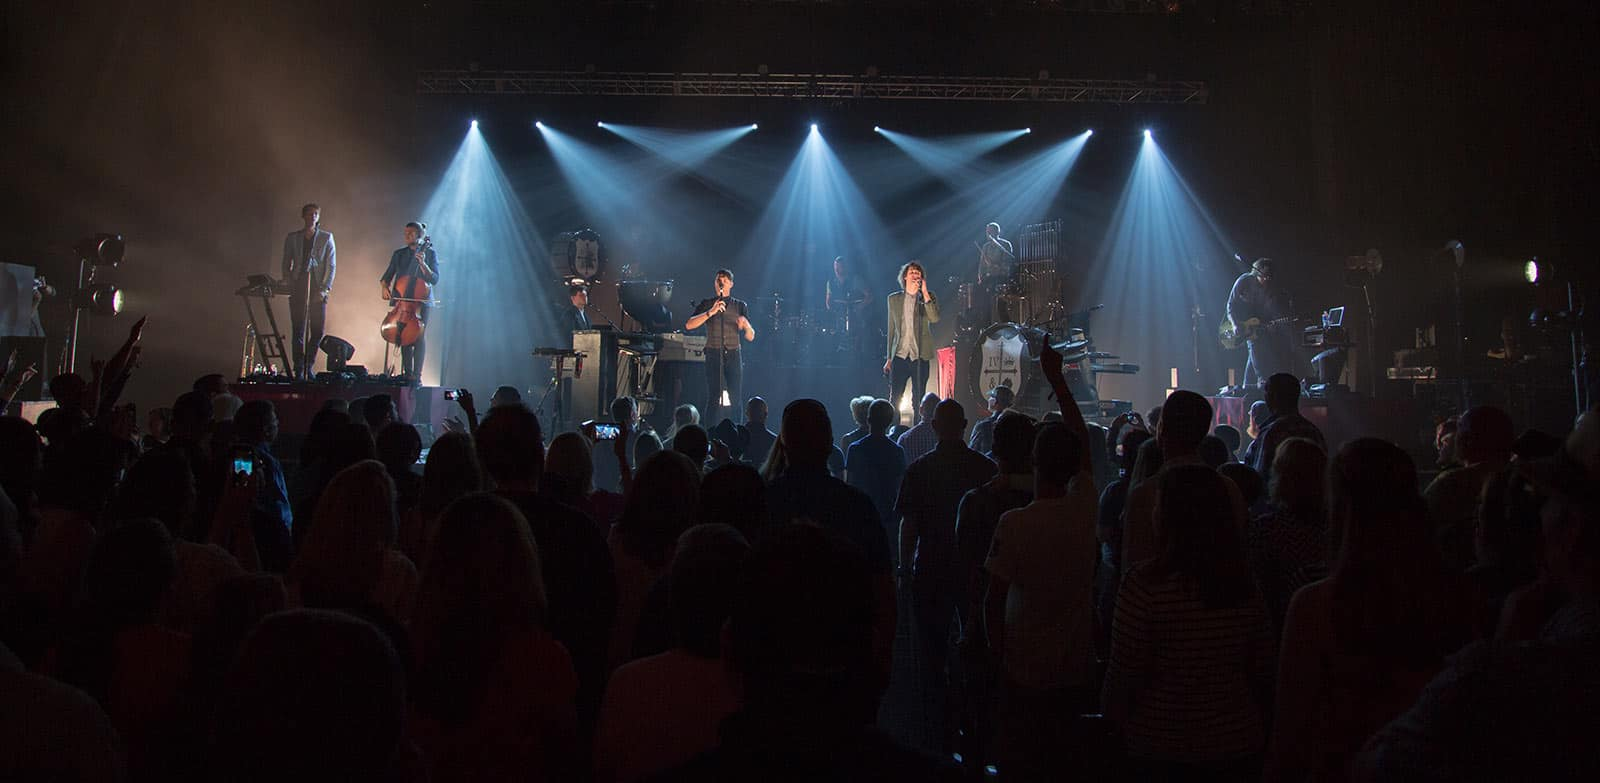 A Night with For King and Country